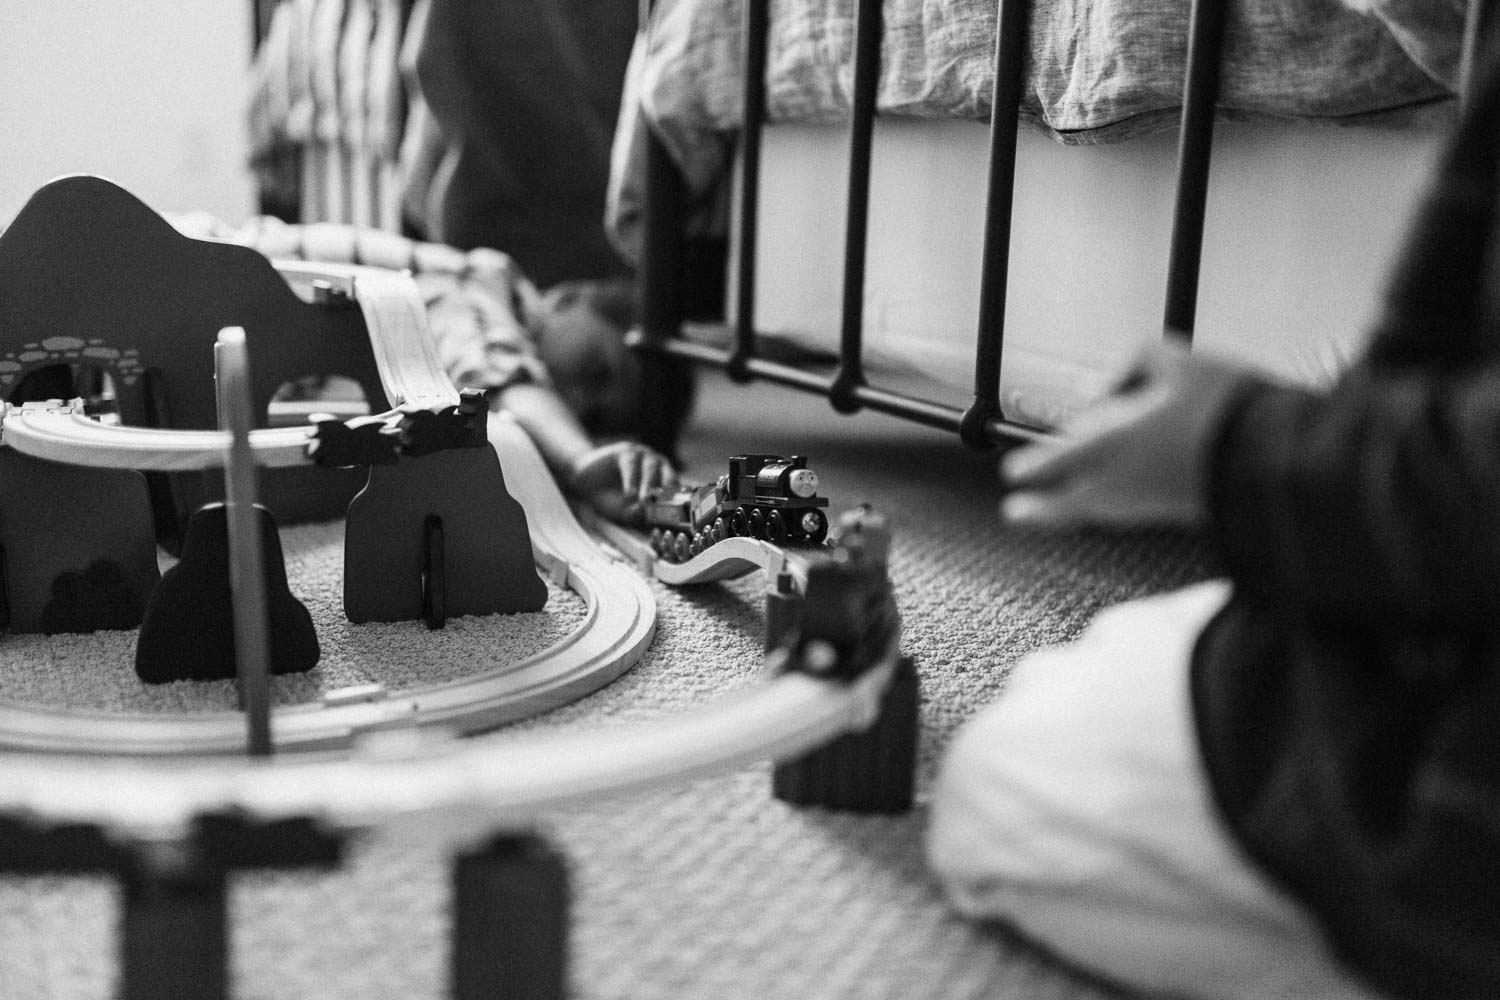 candid-black-and-white-photo-of-boys-playing-with-wooden-train-track-during-in-home-session-with-jen-fairchild-photography-in-encinitas-california